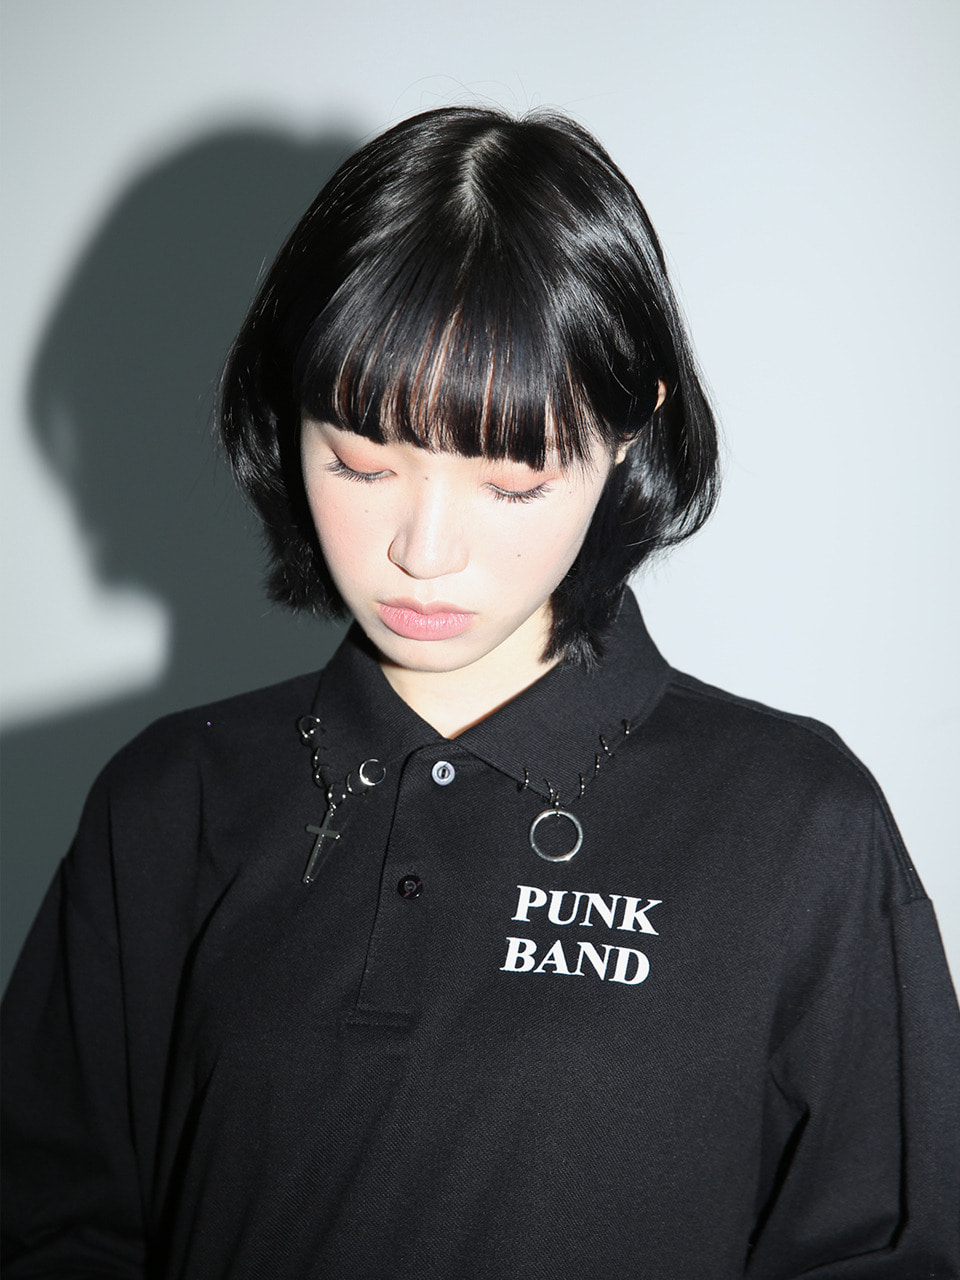 [NEW 10%SALE] 0 1 punk band ring pk